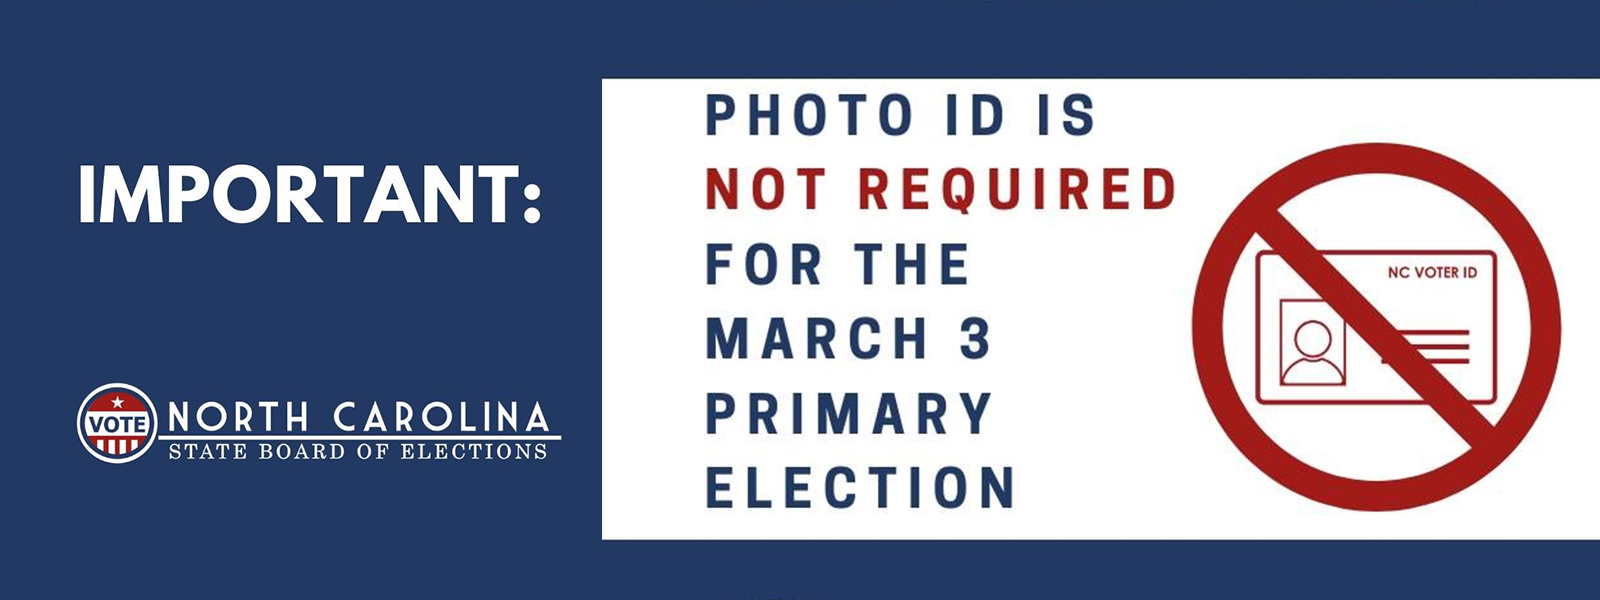 Photo ID is not required for the March 3 Primary Election